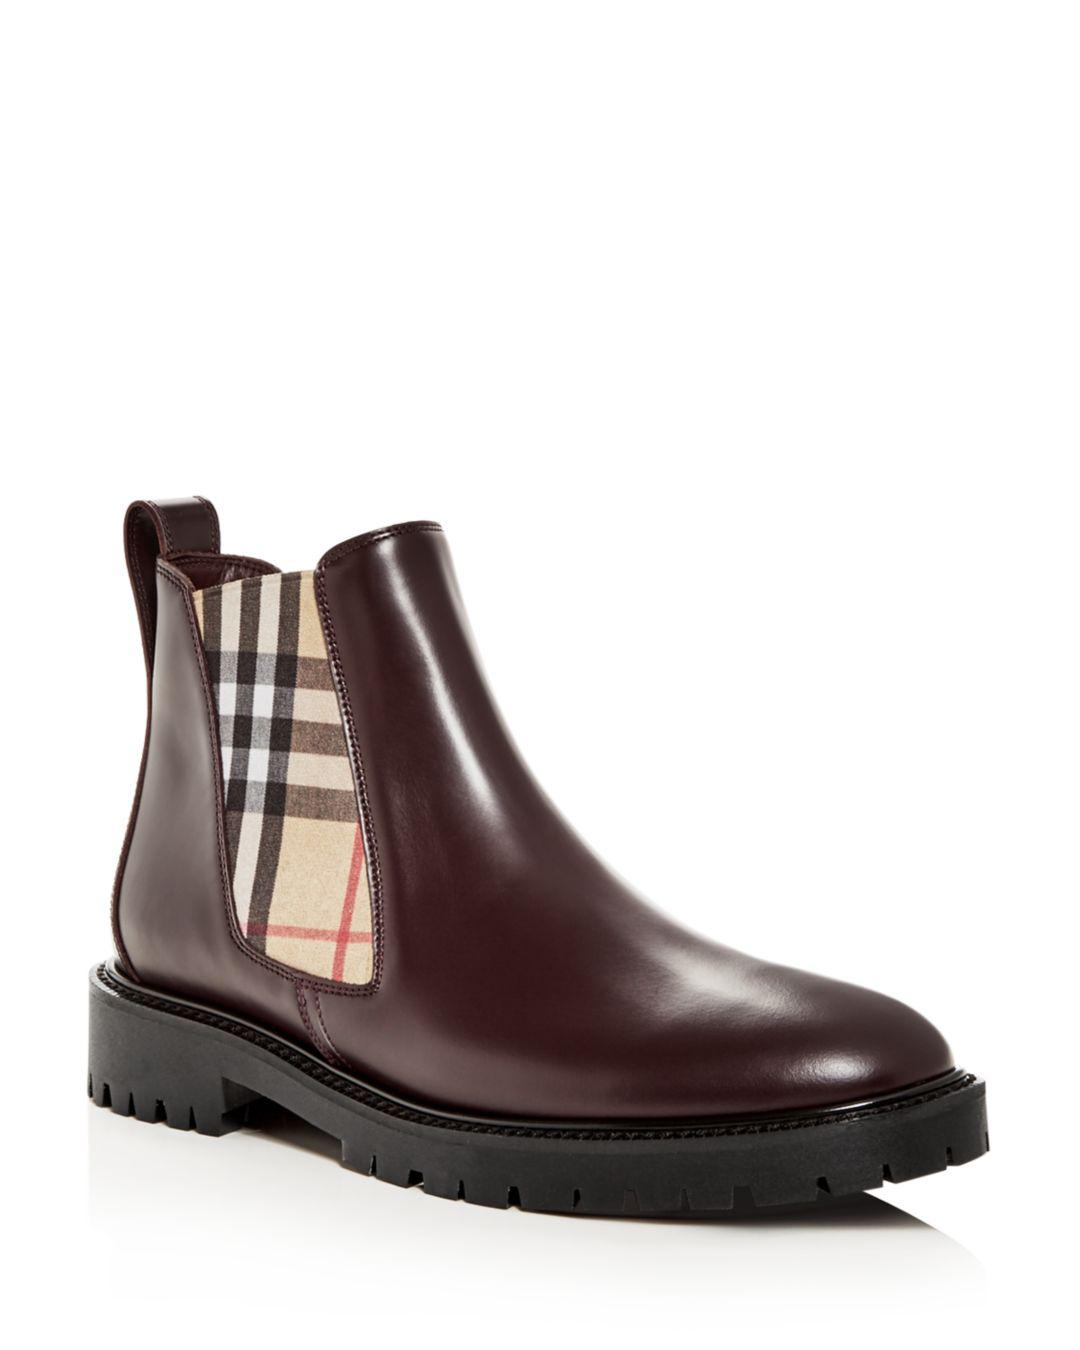 6da78bb5a4f Lyst - Burberry Vintage Check Detail Leather Chelsea Boots in Brown